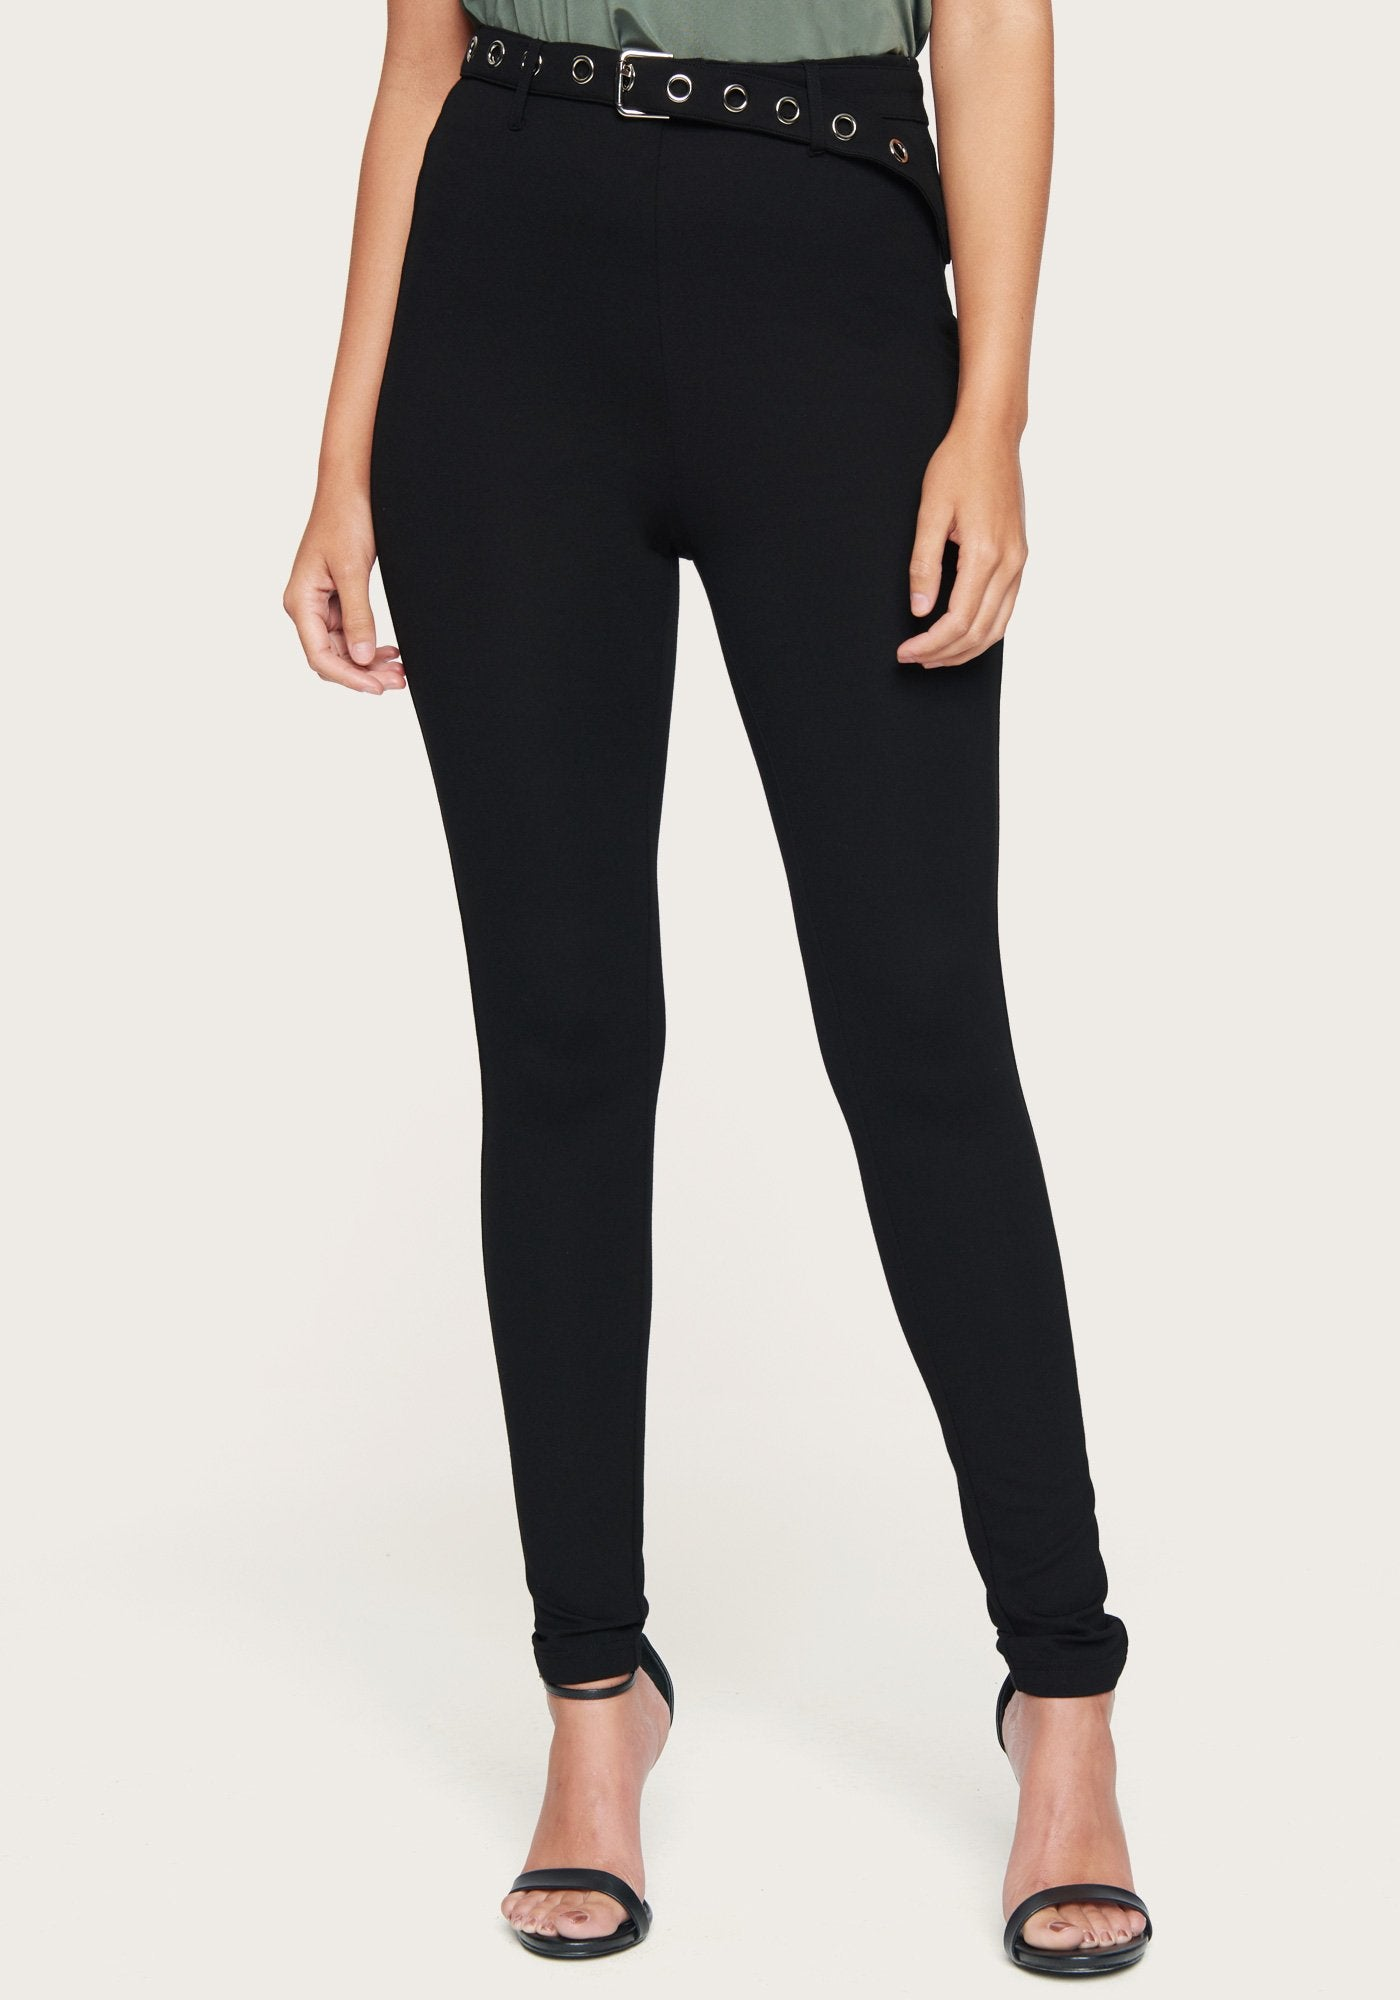 Bebe Women's Belted Leggings, Size XXS in Black Spandex/Nylon